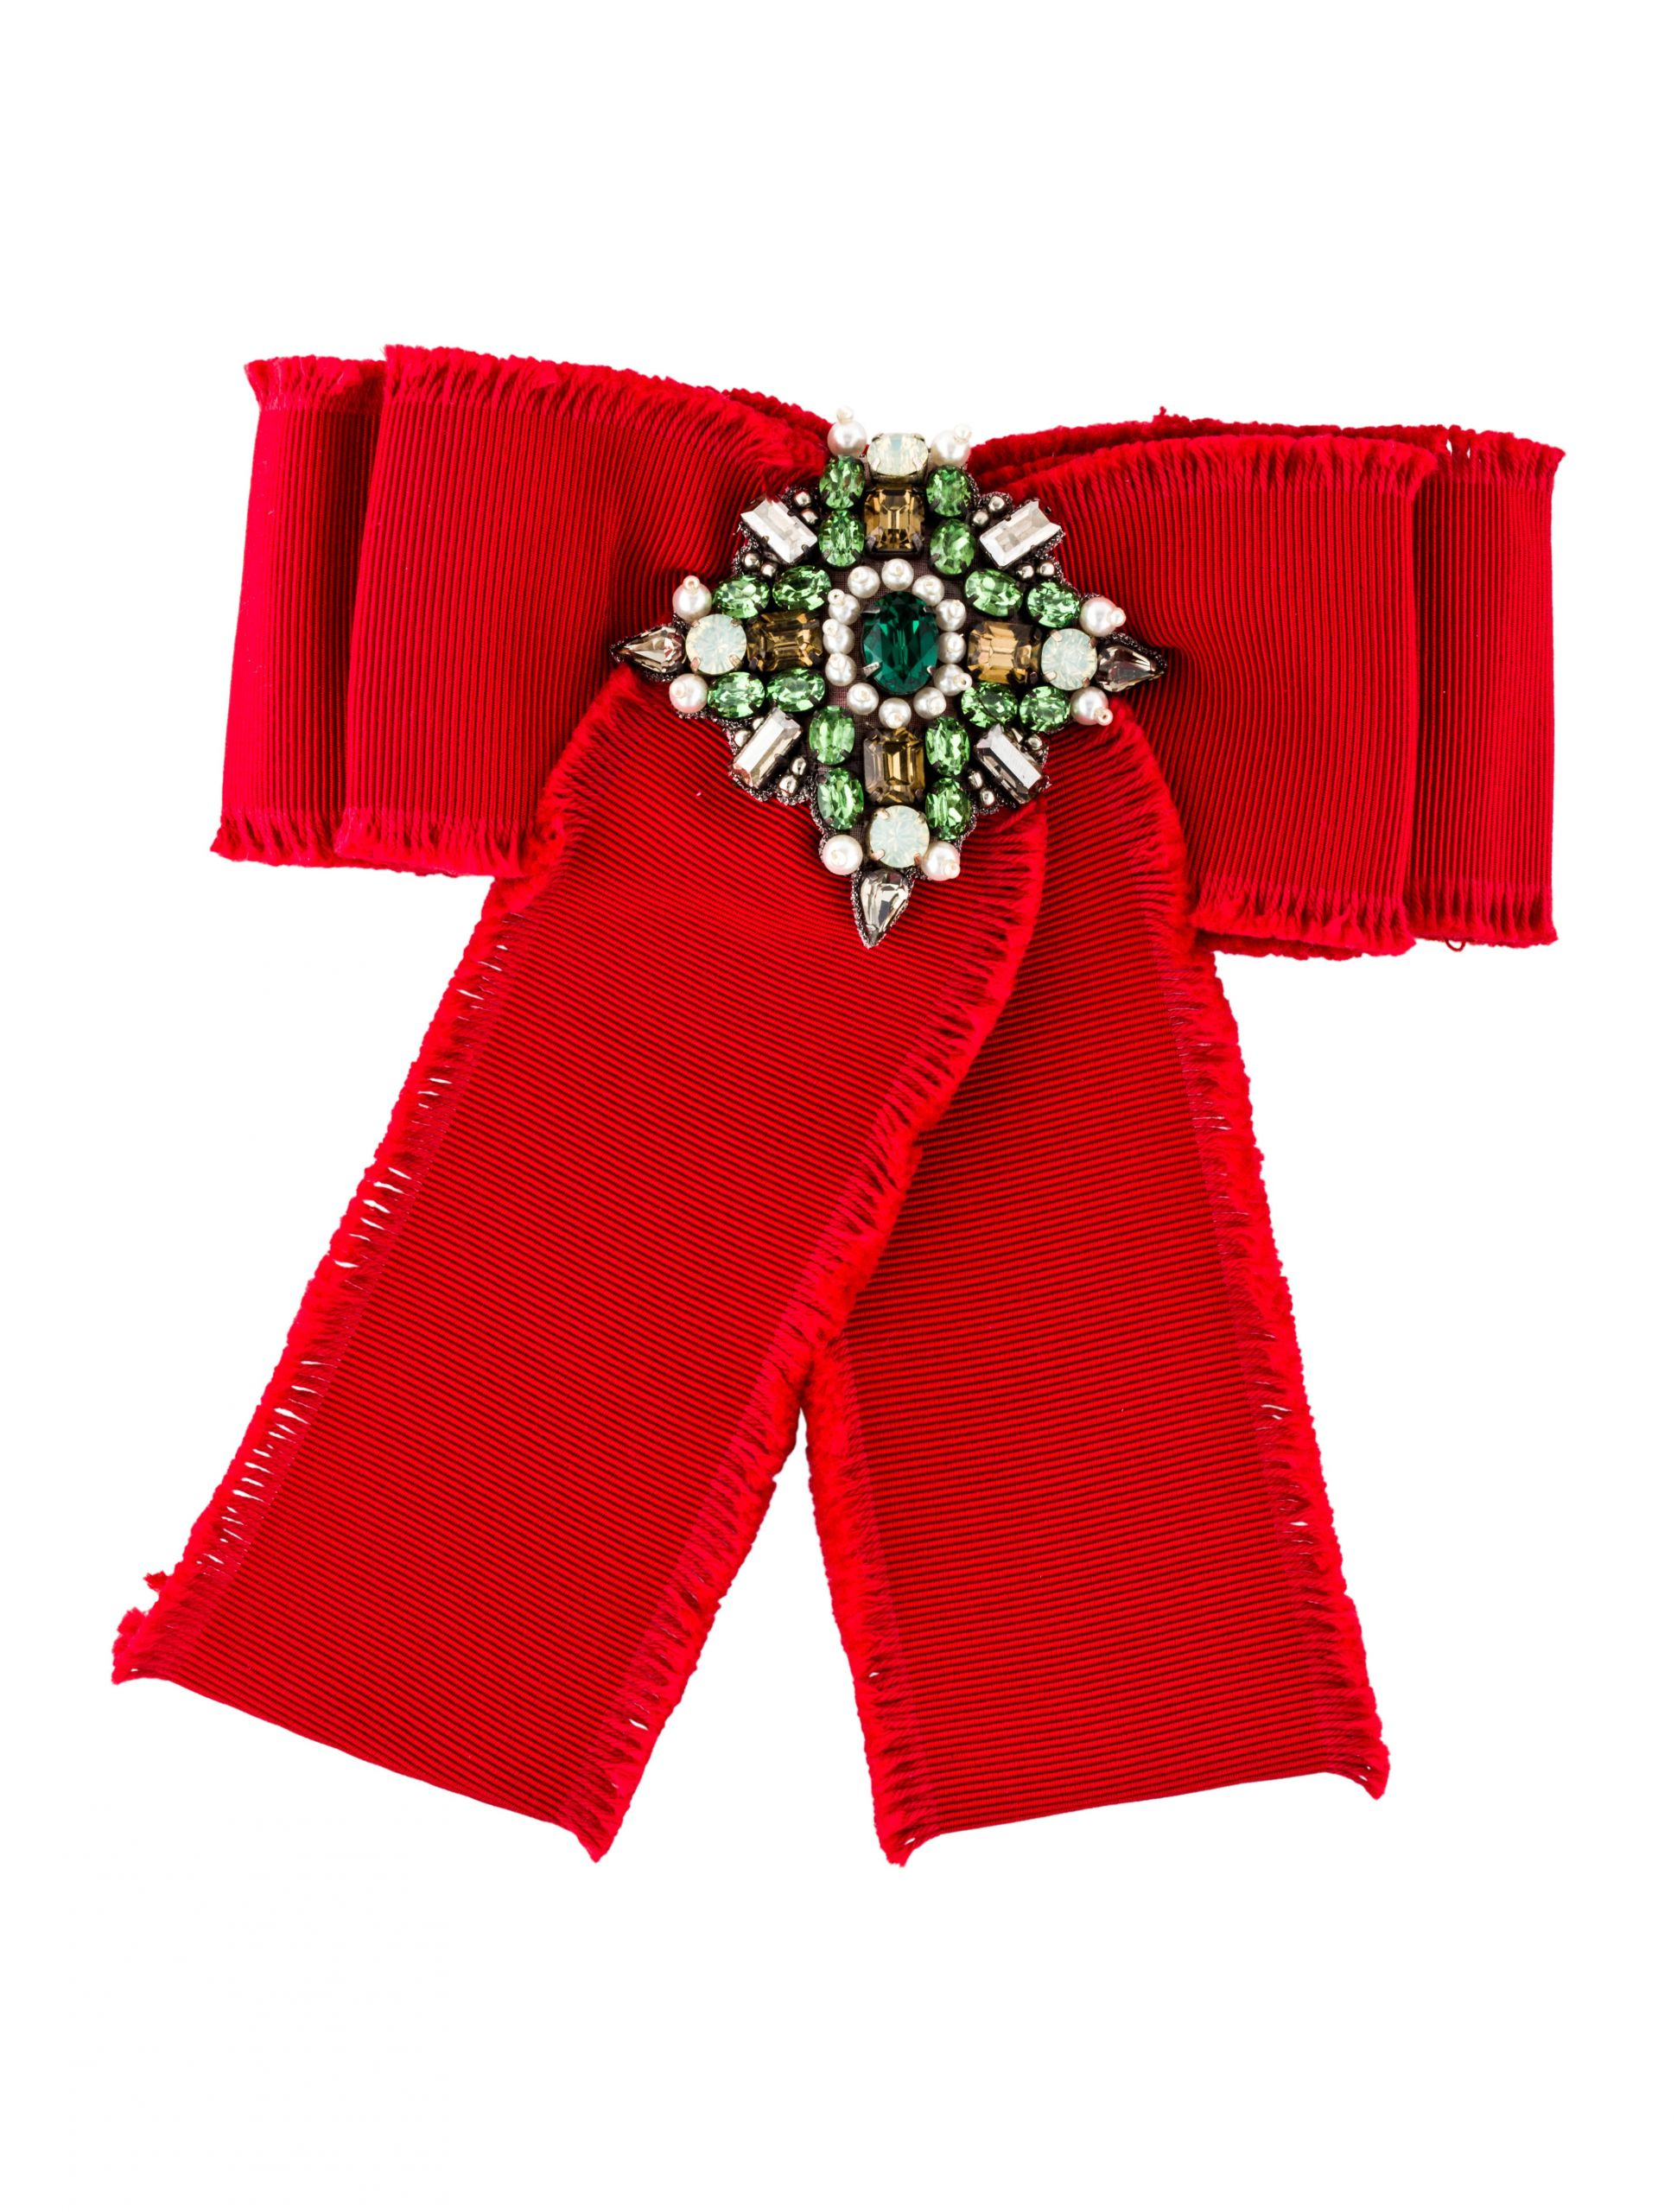 Gucci Brooches  Gucci Grosgrain Bow Brooch Brooches GUC